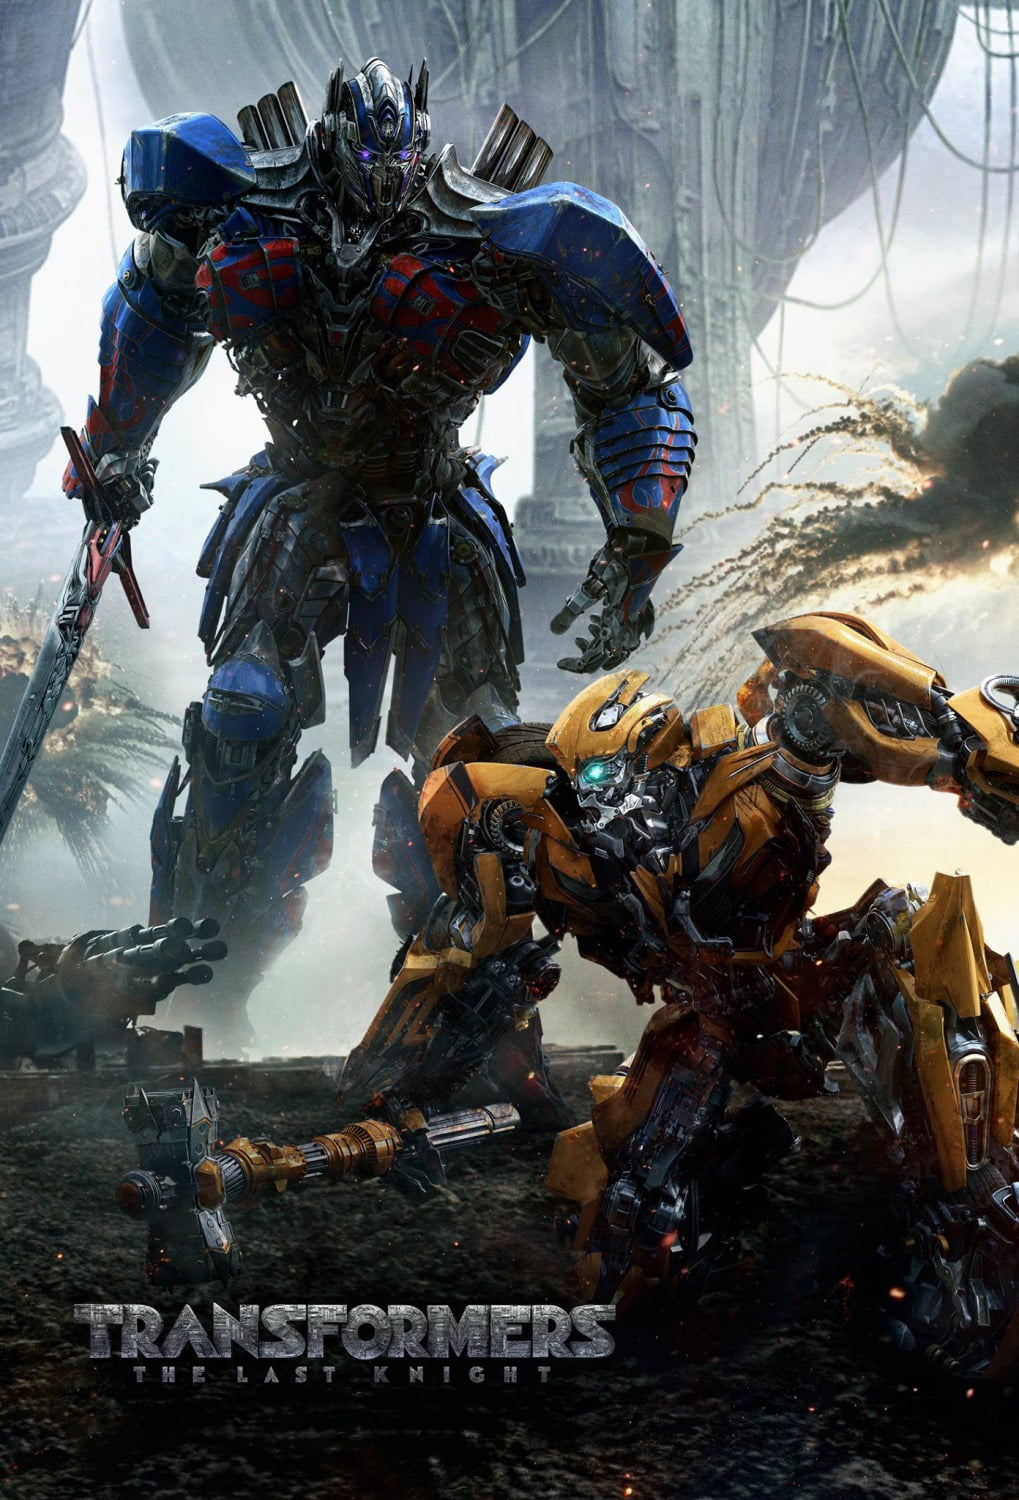 the last knight poster high quality HD printable wallpapers 2017 bumblebee and optimus prime fight scene